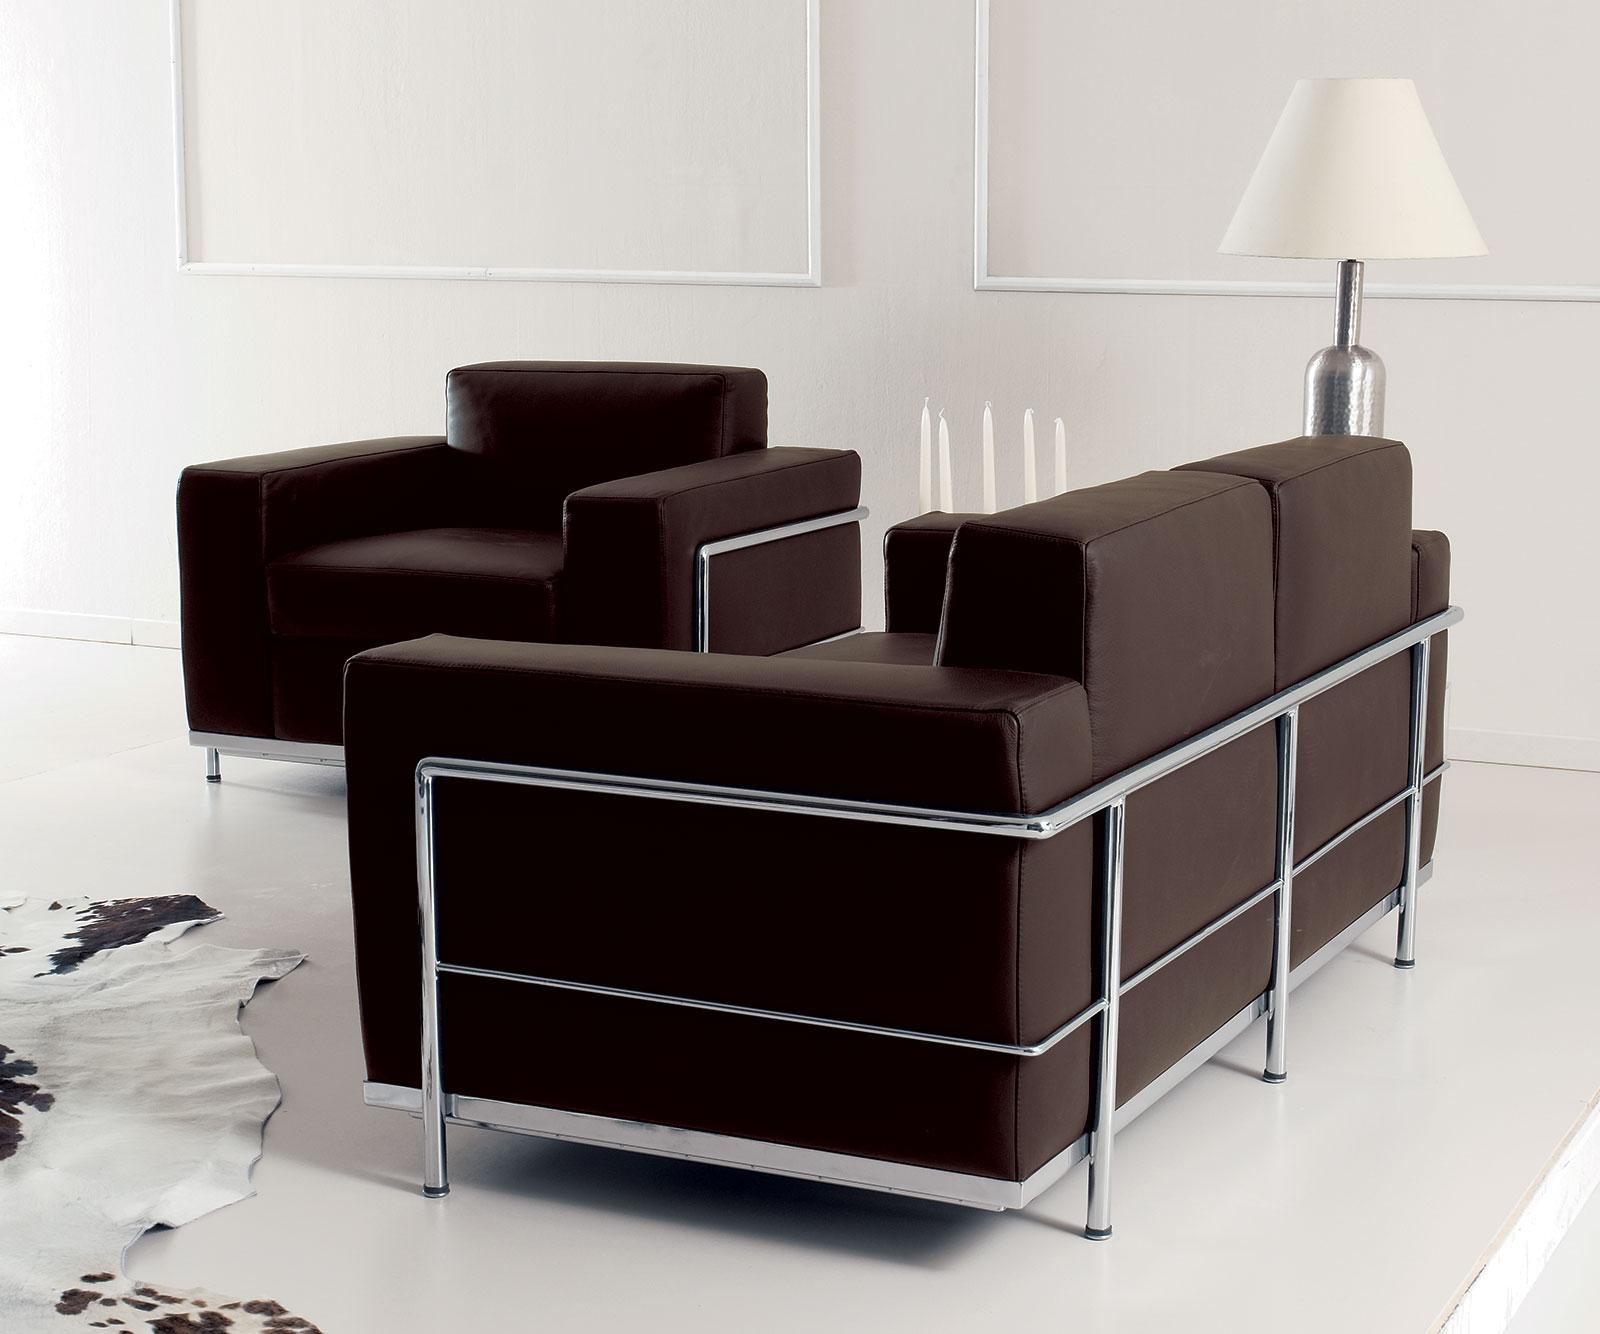 cook 2 seater modern leather sofa shop online italy dream design. Black Bedroom Furniture Sets. Home Design Ideas